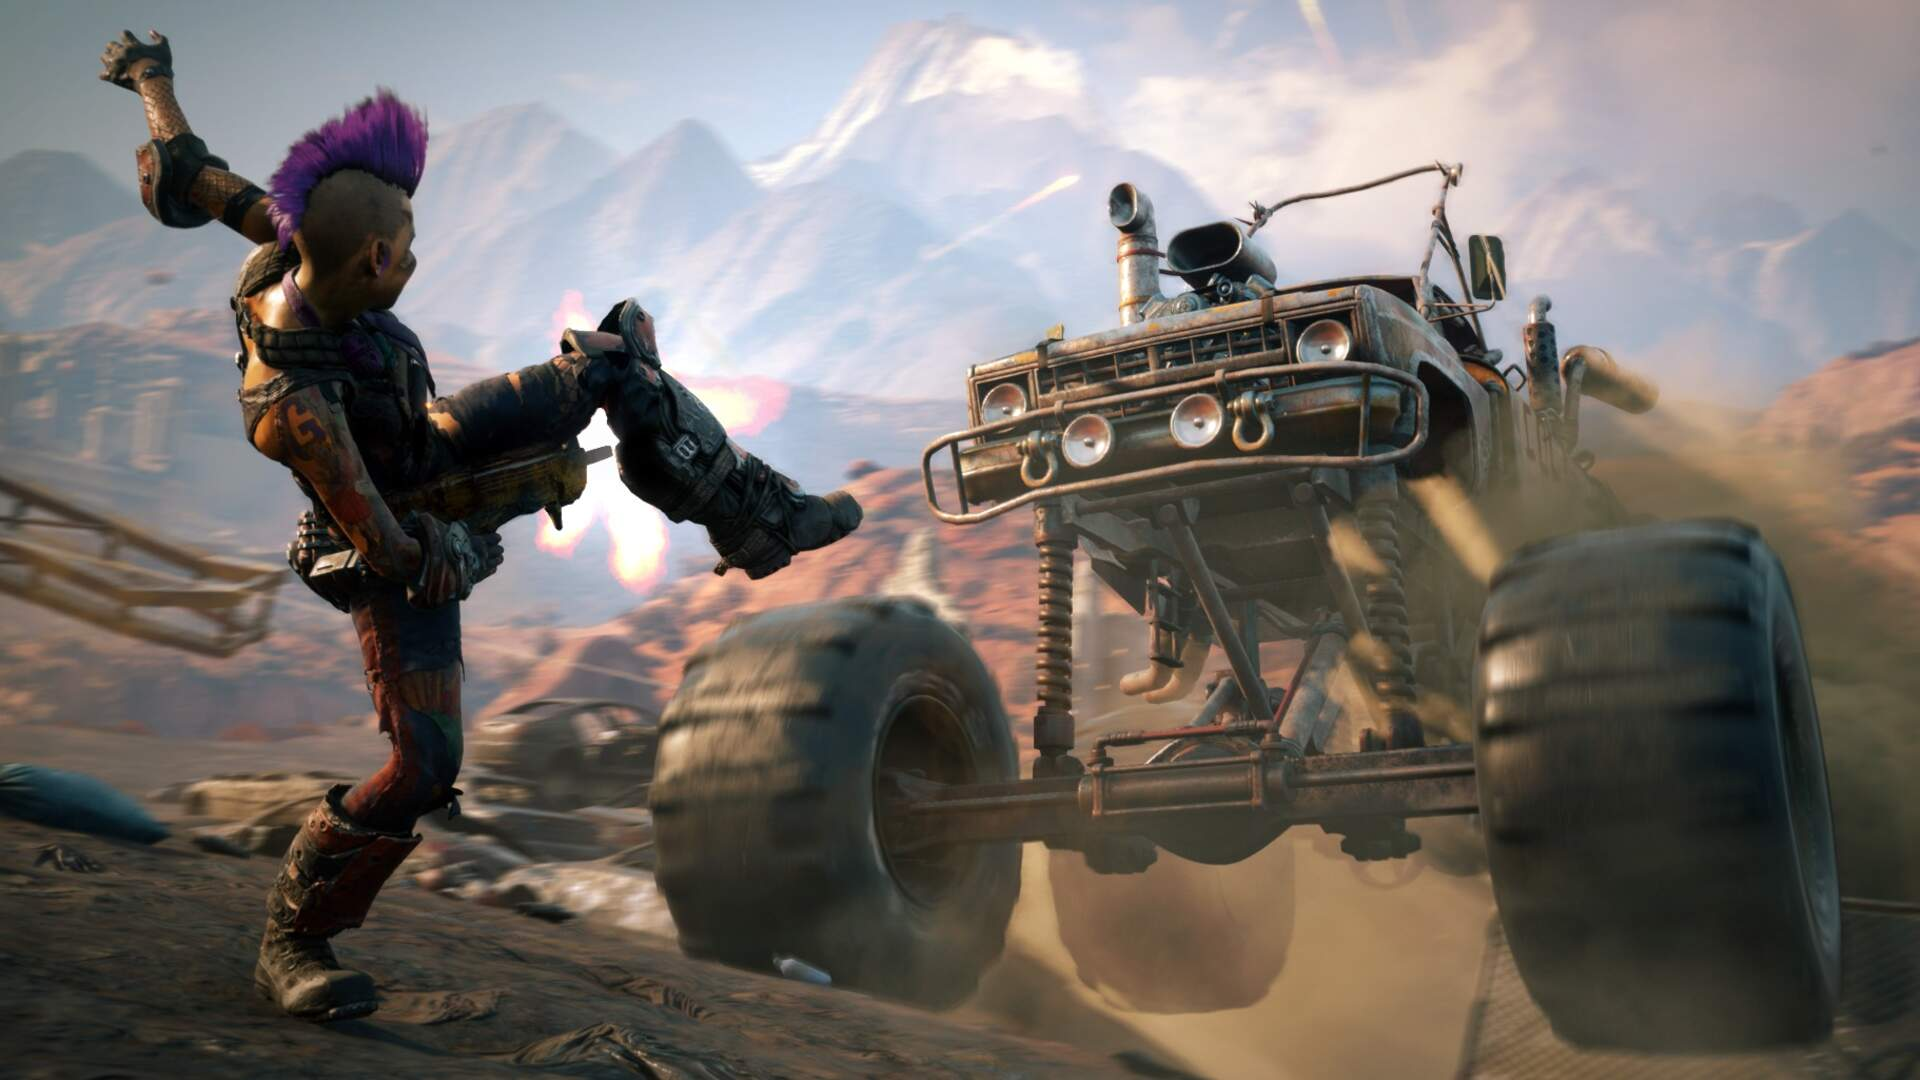 Rage 2 Release Date, Gameplay, PC Specs, Multiplayer, Trailer - Everything we Know